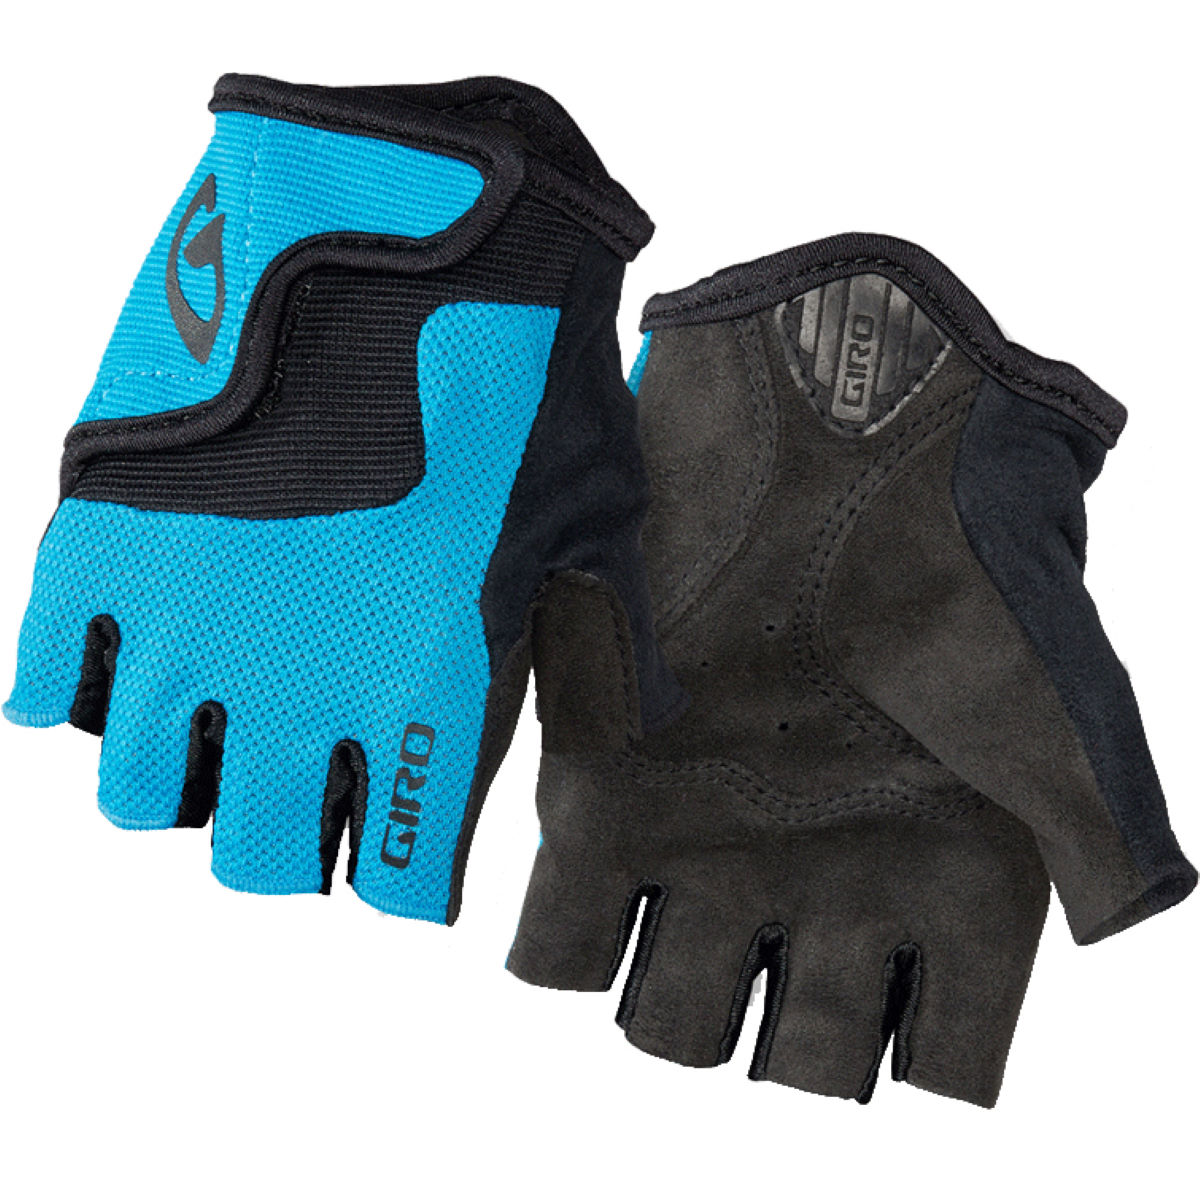 Gants courts Enfant Giro Bravo - 10-11 Years Blue Jewel Gants courts